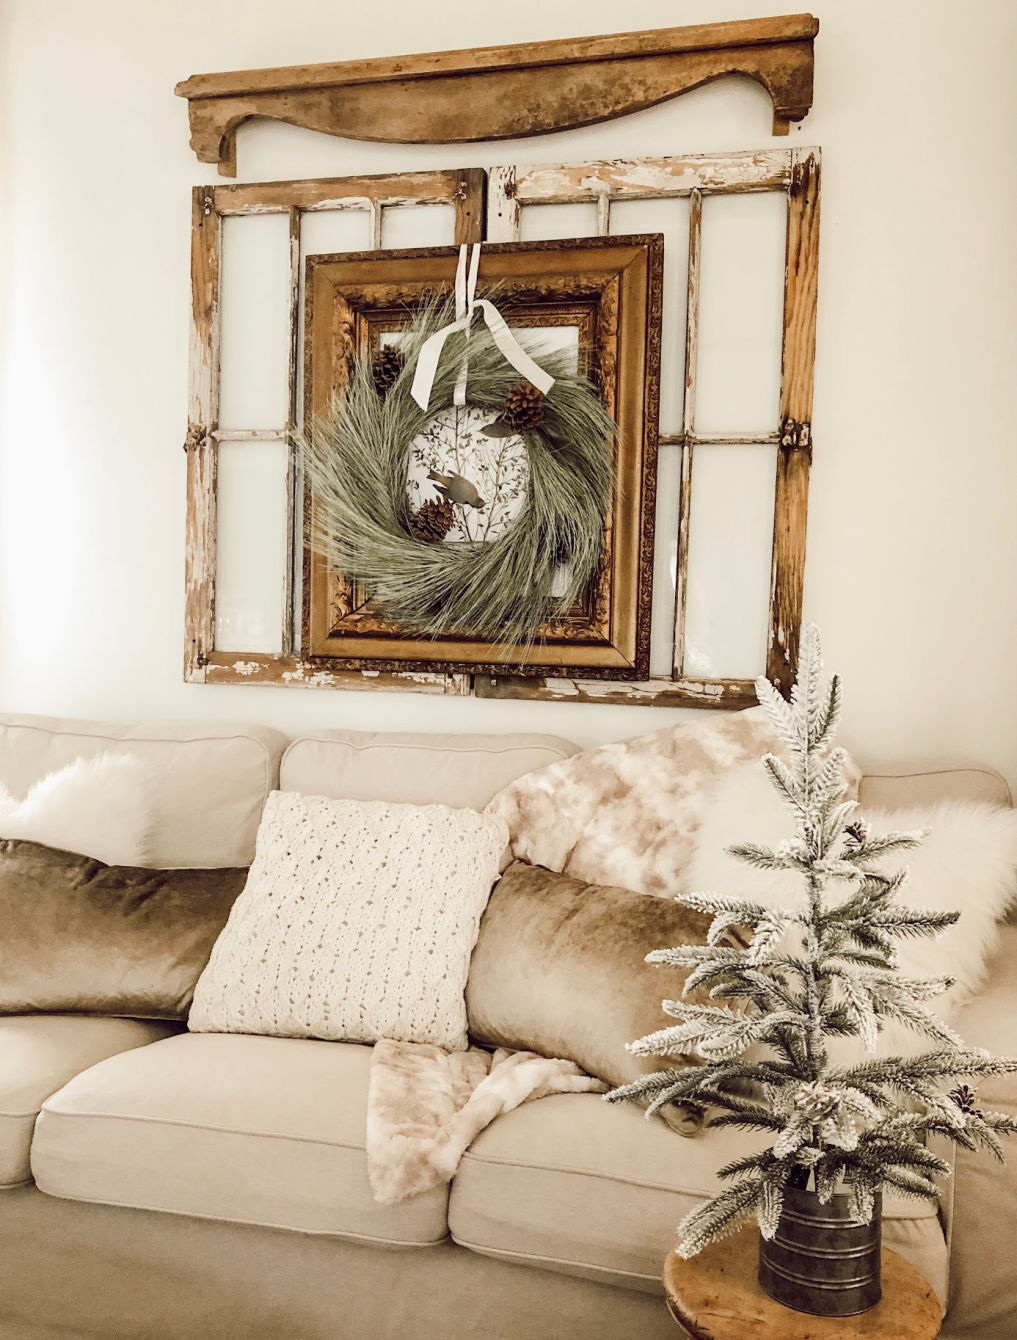 Old windows are the perfect backdrop to art or a wreath #farmhouse #farmhousedecor #farmhousestyle #neutraldecor #cottagestyle #christmaswreath #farmhousechristmas